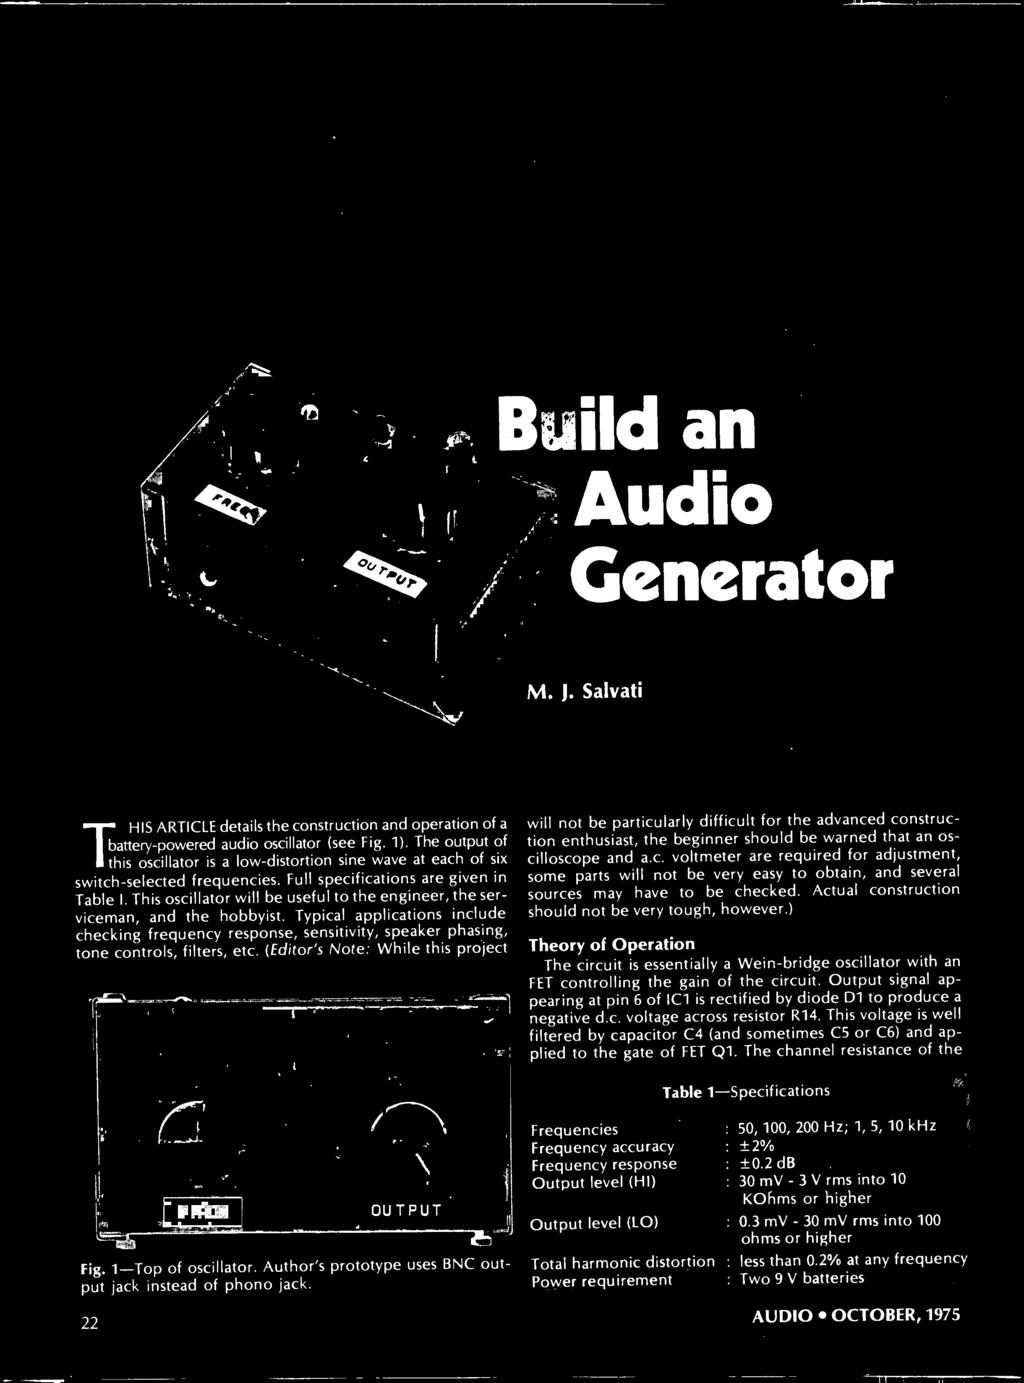 The Most Extraordinary Cassette Deck Value Ever Offered Full An Automatic Cutoff Circuit For Robbe Infinity Charger Rc Actual Construction Should Not Be Very Tough However Heory Of Operation He